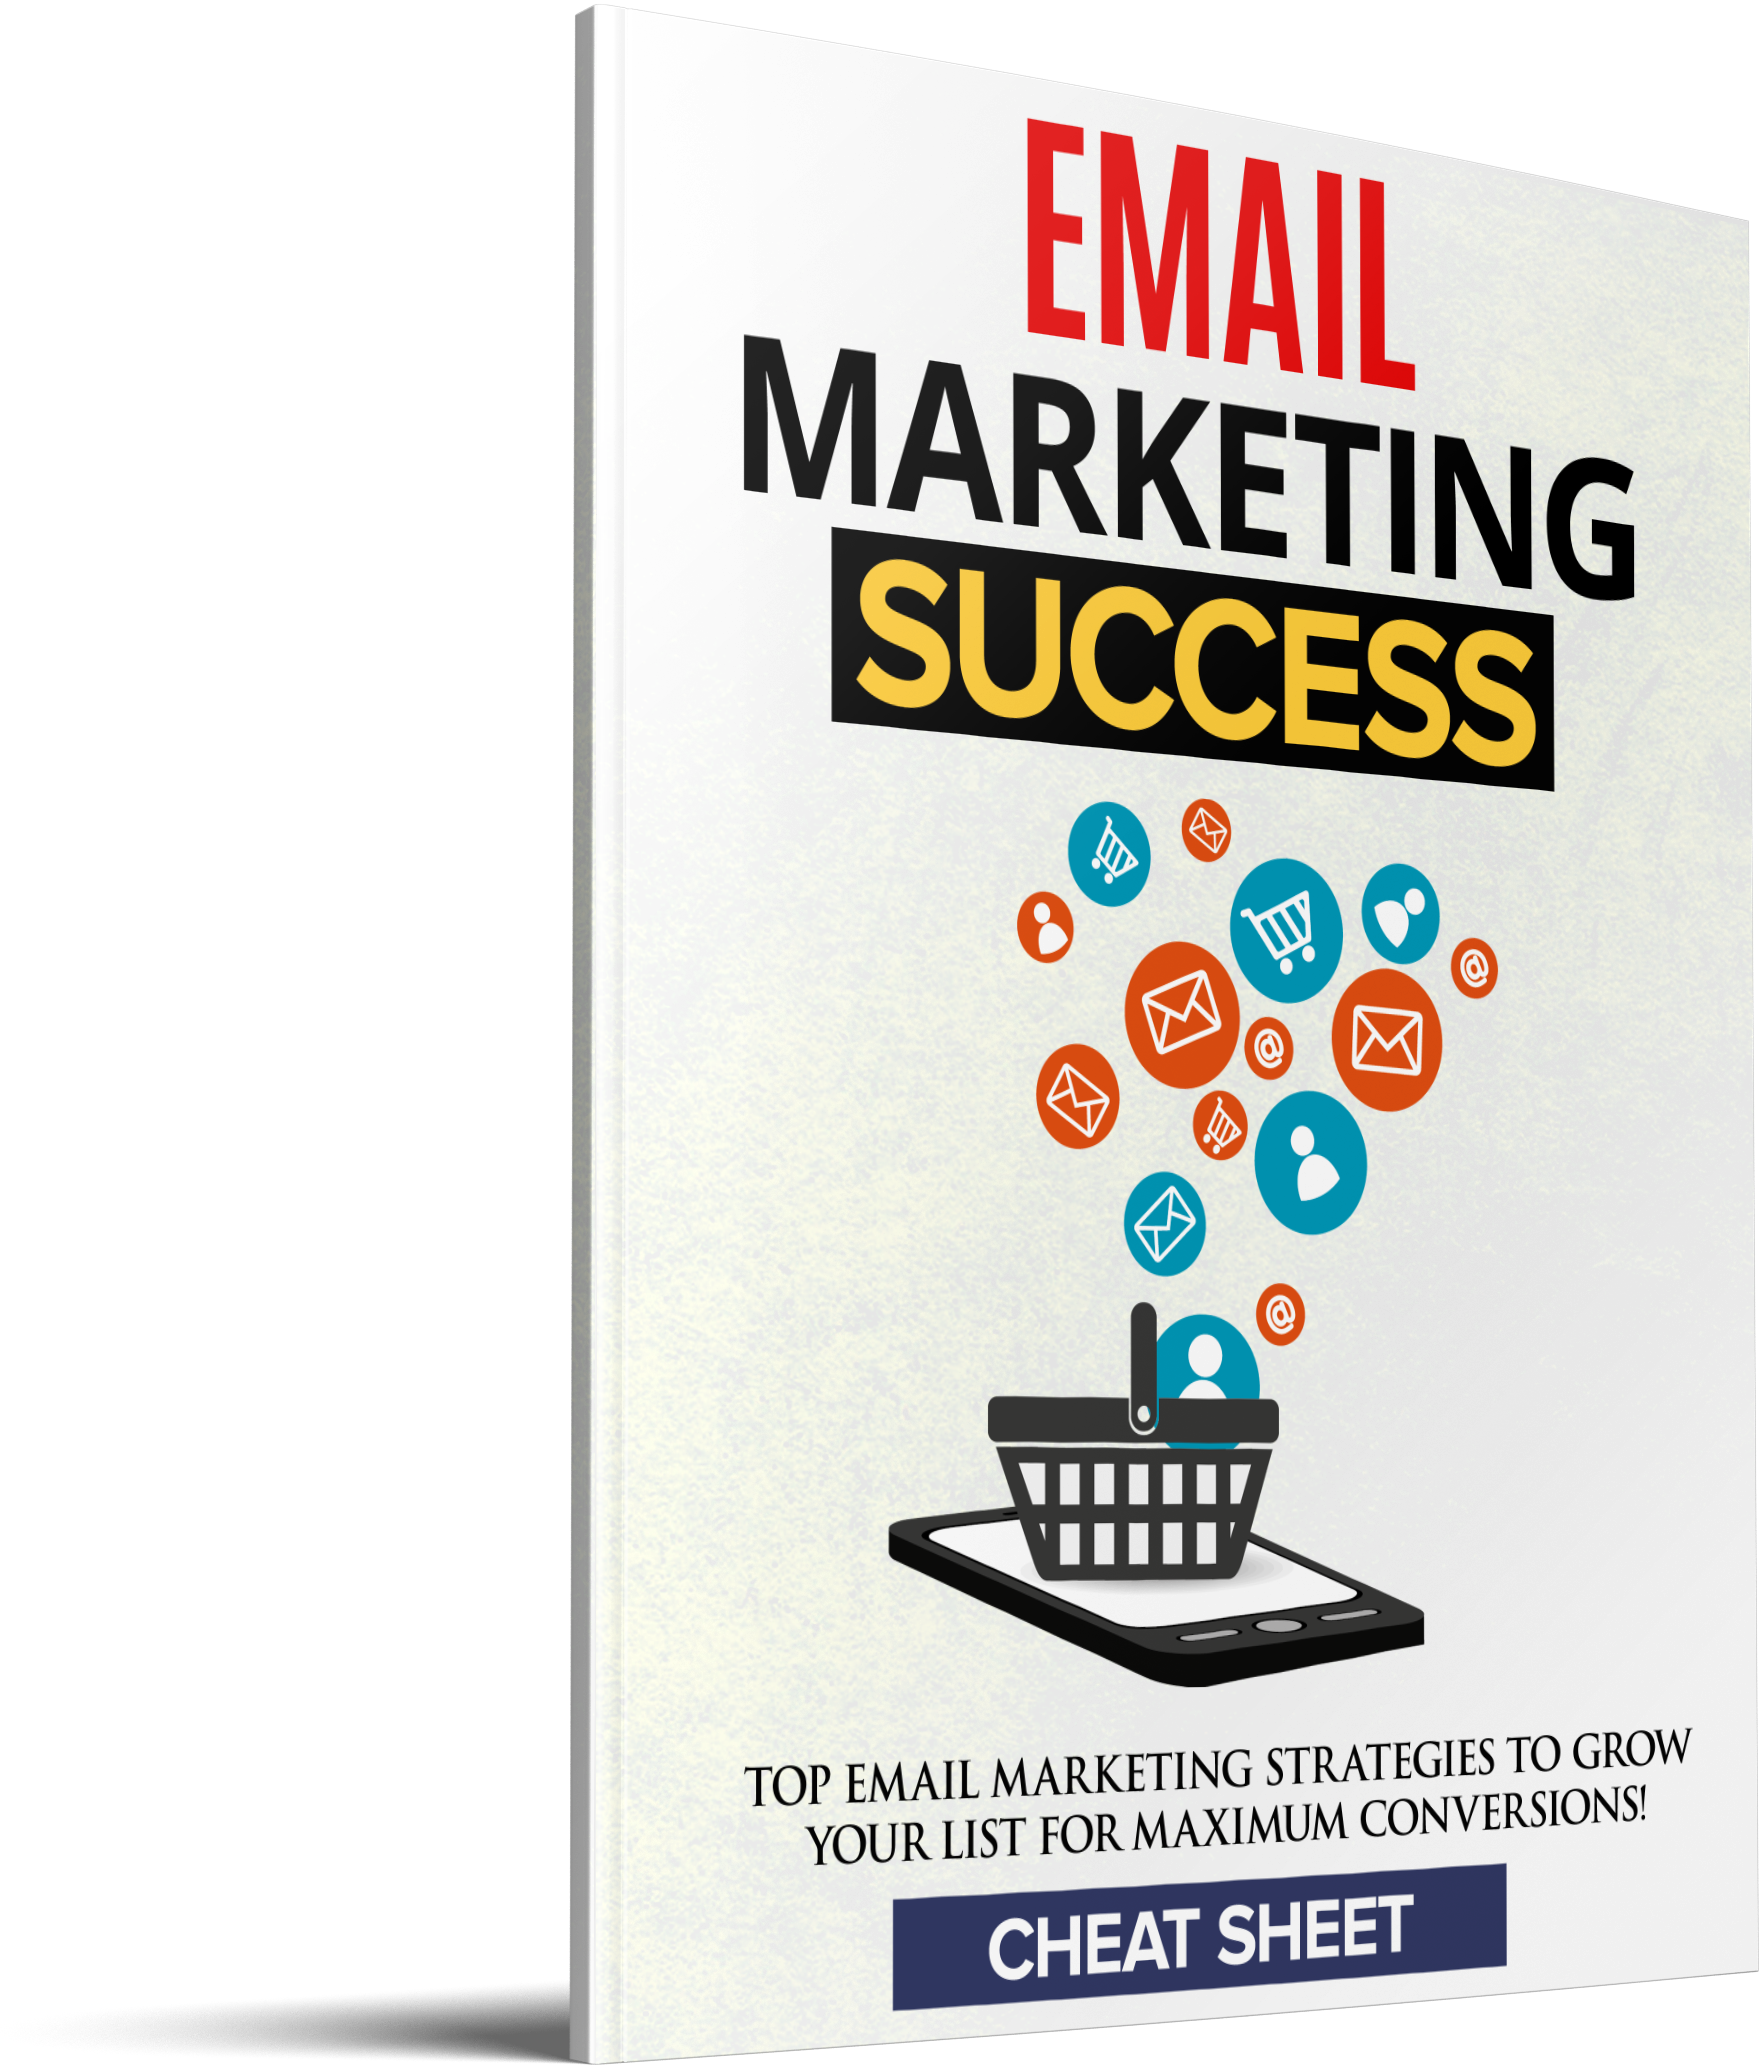 Email Marketing Success Cheat Sheet